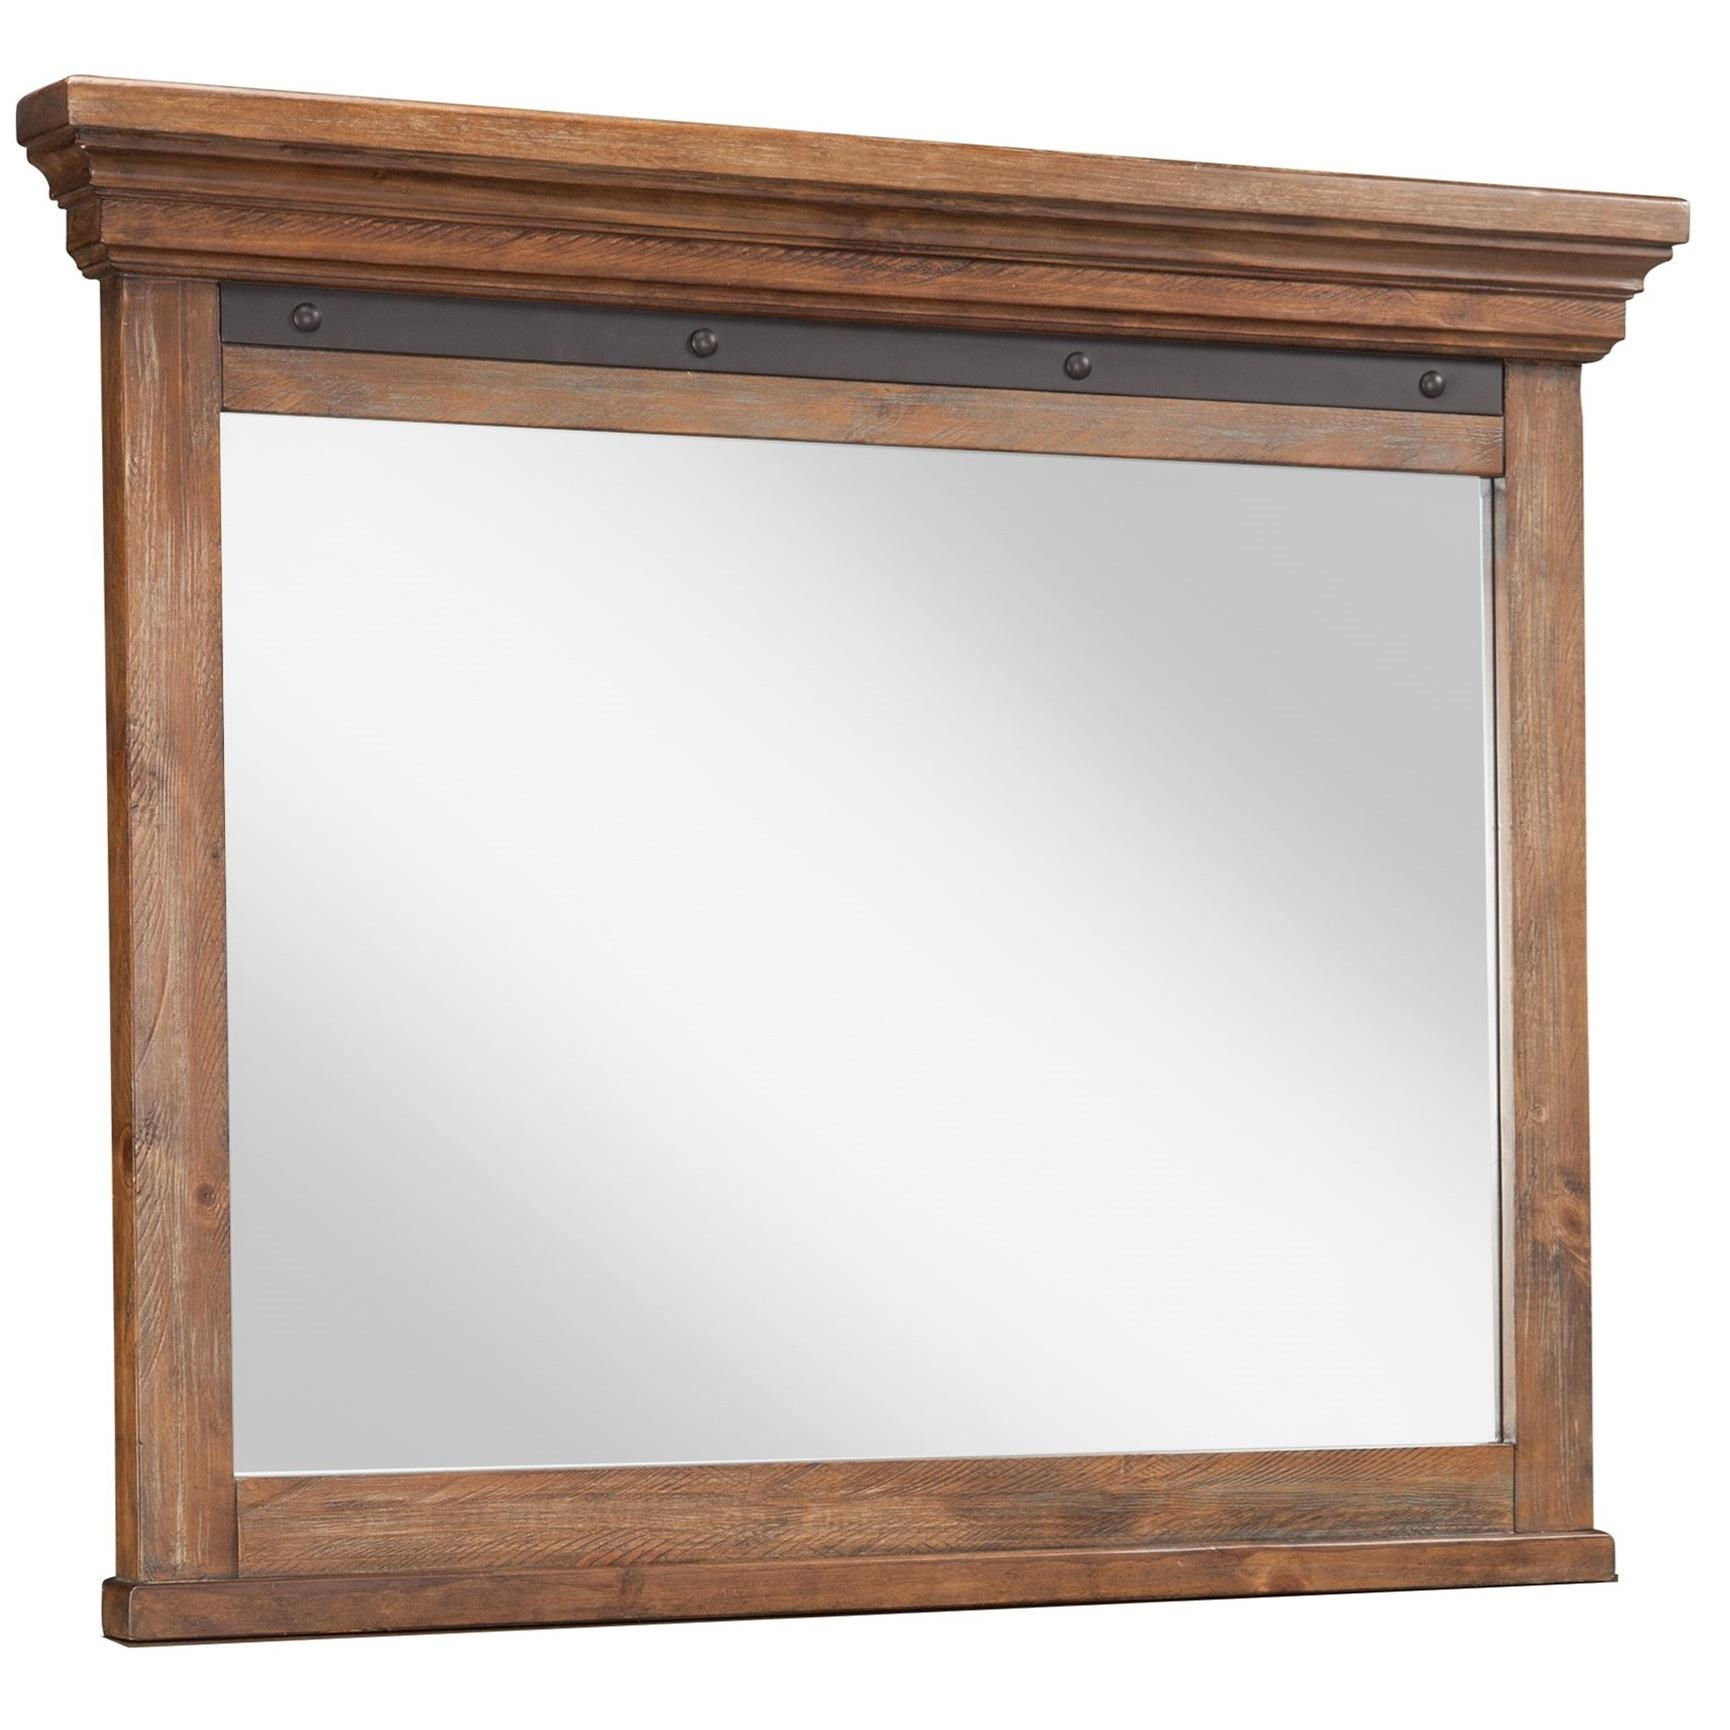 Taos Dresser Mirror by Intercon at Fisher Home Furnishings